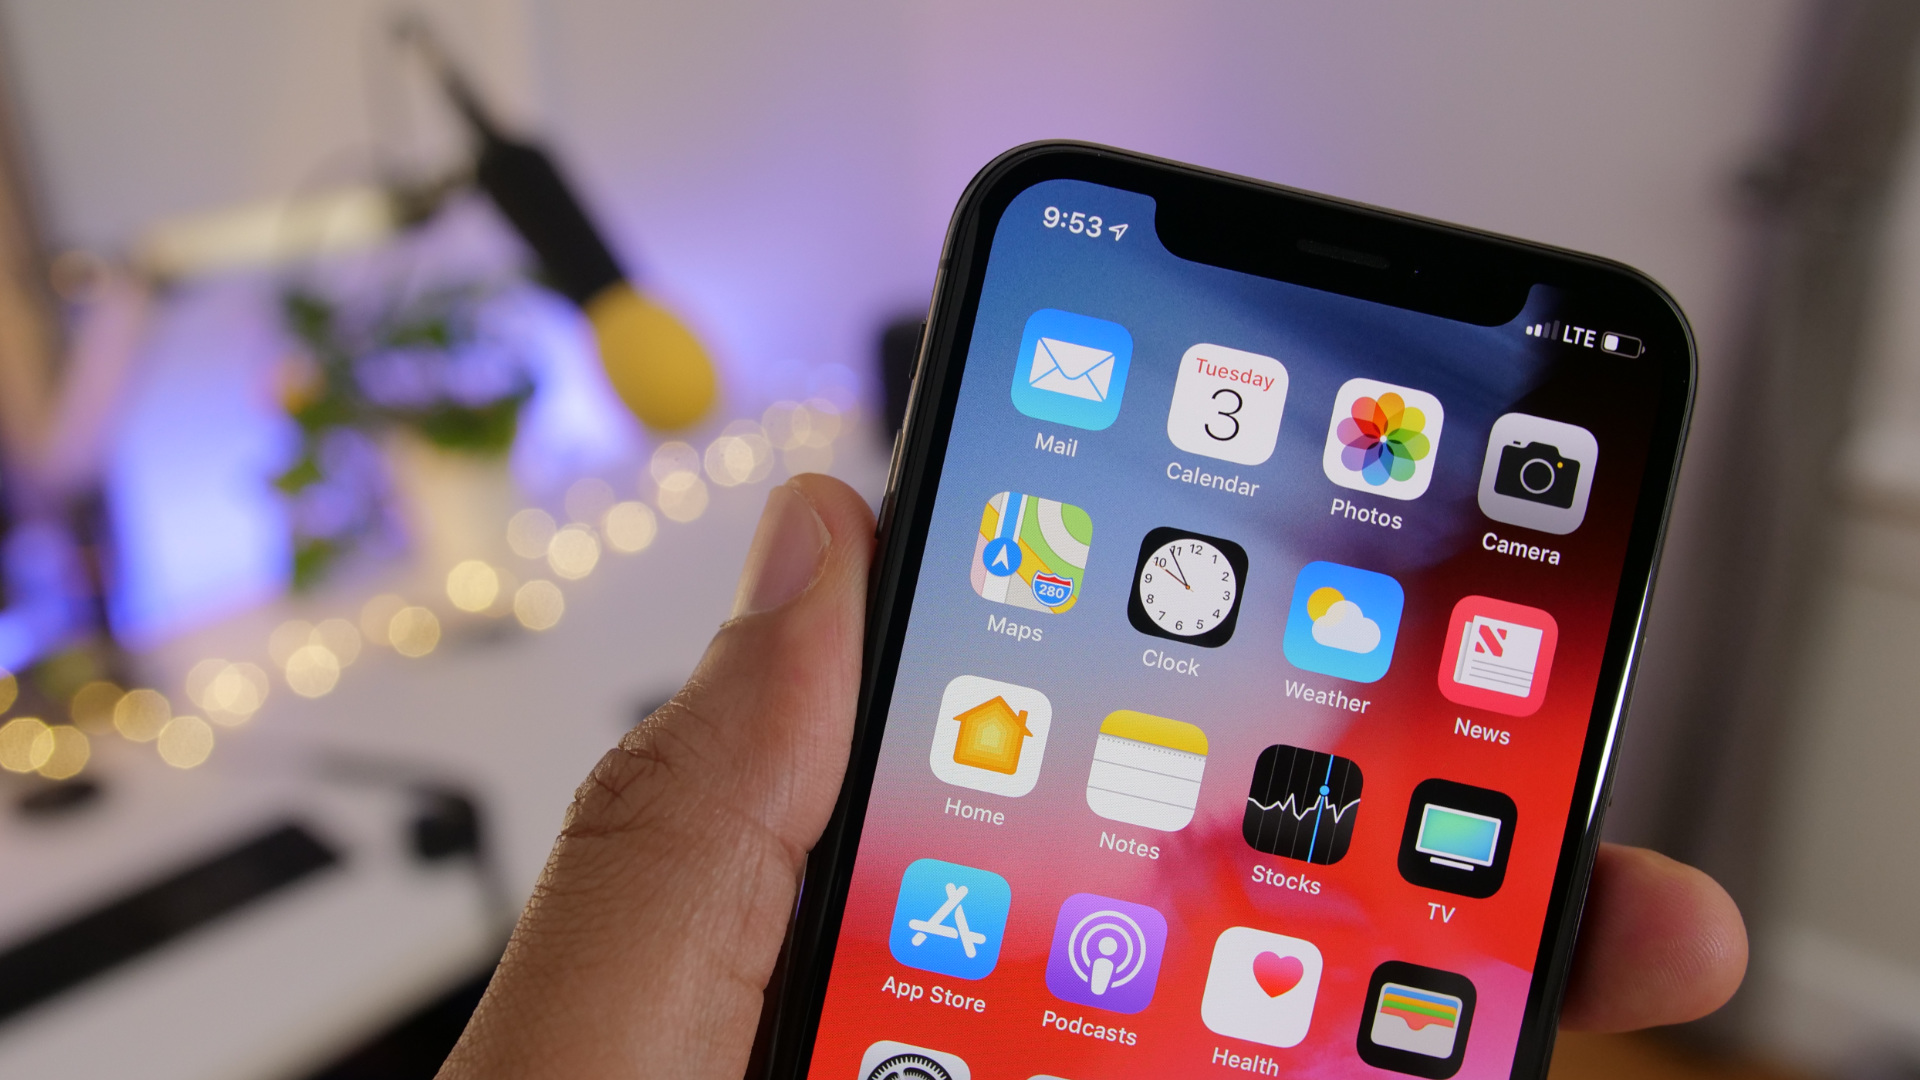 9to5mac.com - Zac Hall - iOS 12 developer beta 4 for iPhone and iPad now available